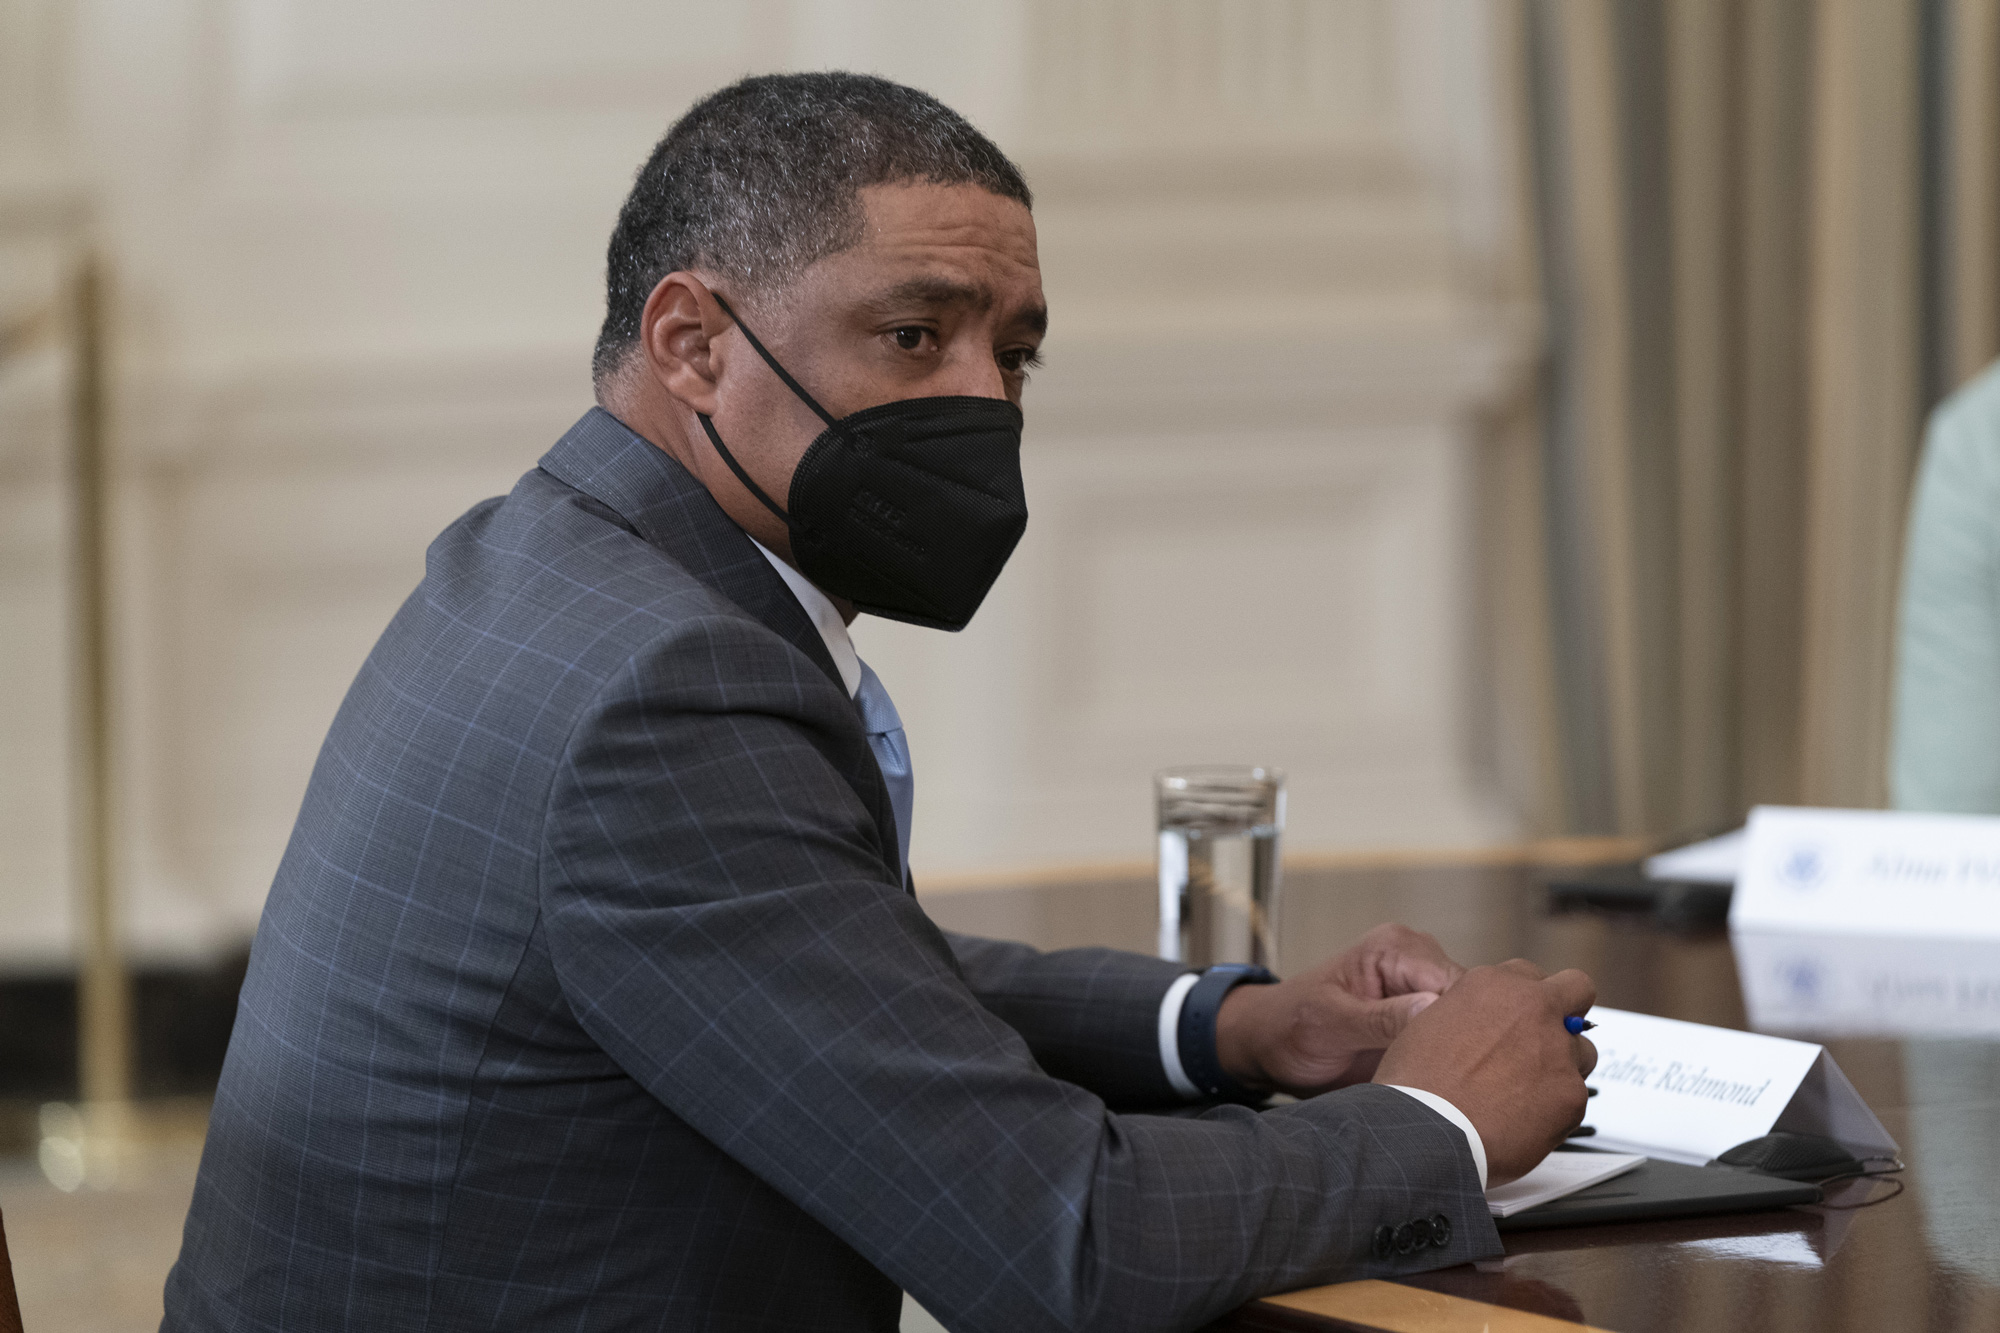 White House senior adviser Cedric Richmond speaks during a roundtable meeting in the State Dining Room of the White House in Washington, D.C., on March 5.